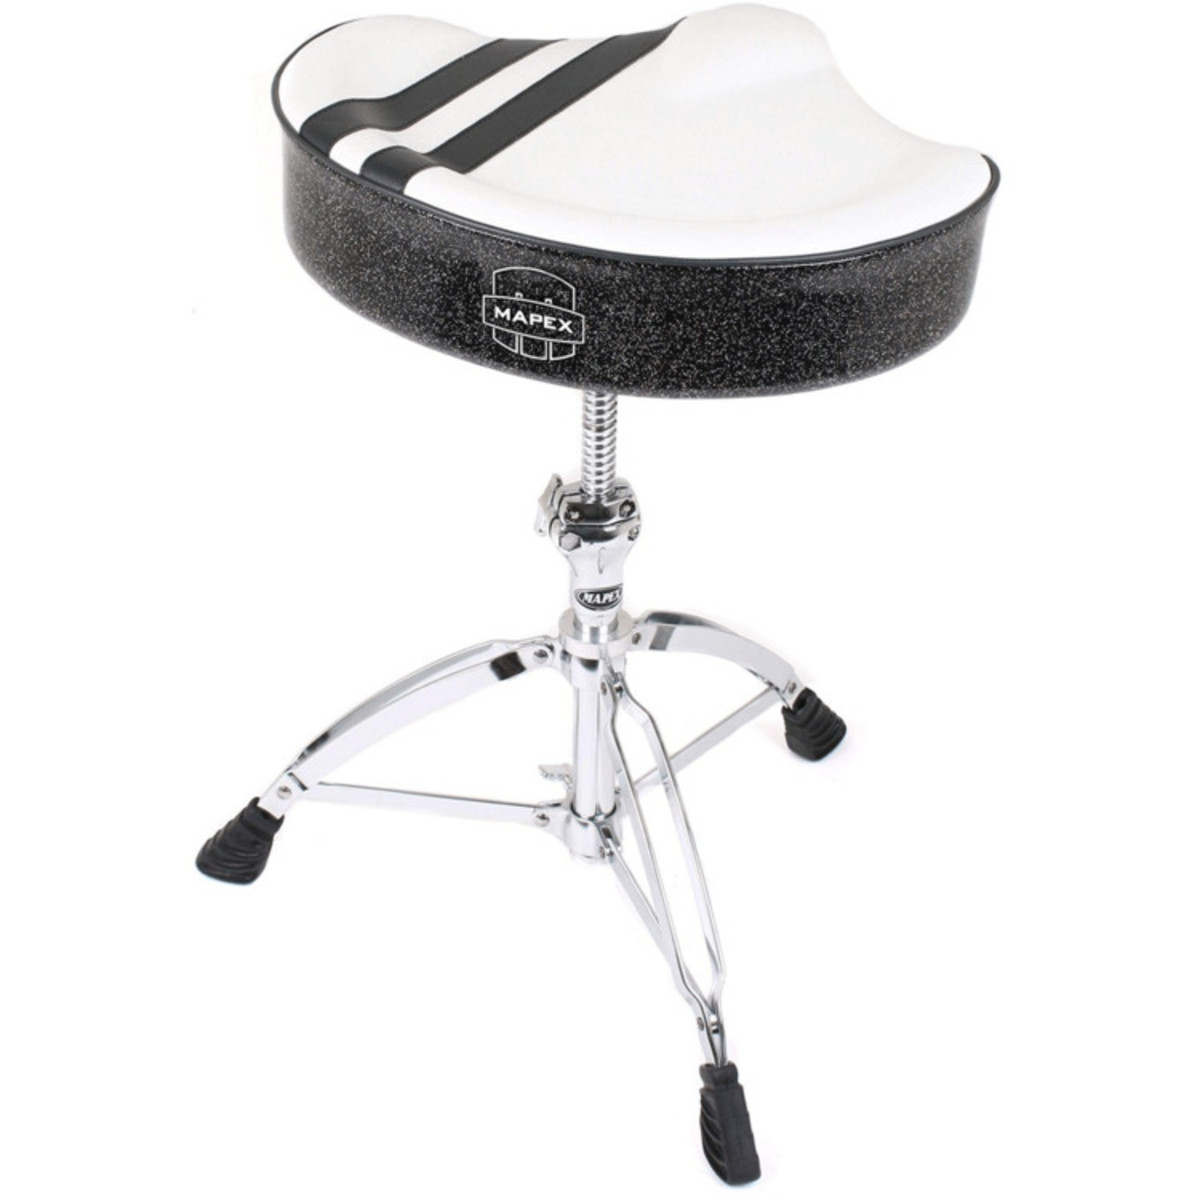 Image of Mapex T756W Stool Saddle Top Threaded Base White with Black Stripe